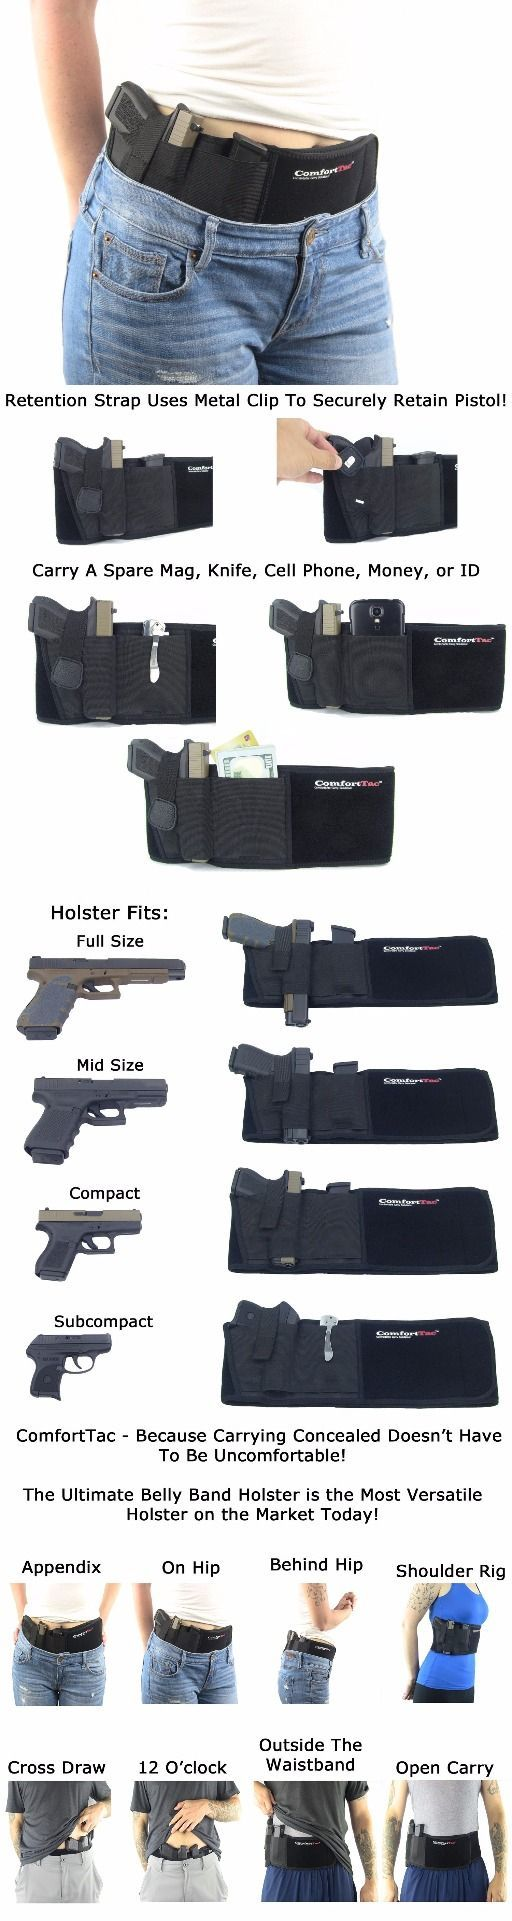 Ultimate Belly Band hand gun pistol knife Holster for Concealed Carry | Black | Fits Gun Smith and Wesson Bodyguard, Glock 19, 17, 42, 43, P238, Ruger LCP, and Similar Sized Guns | For Men and Women